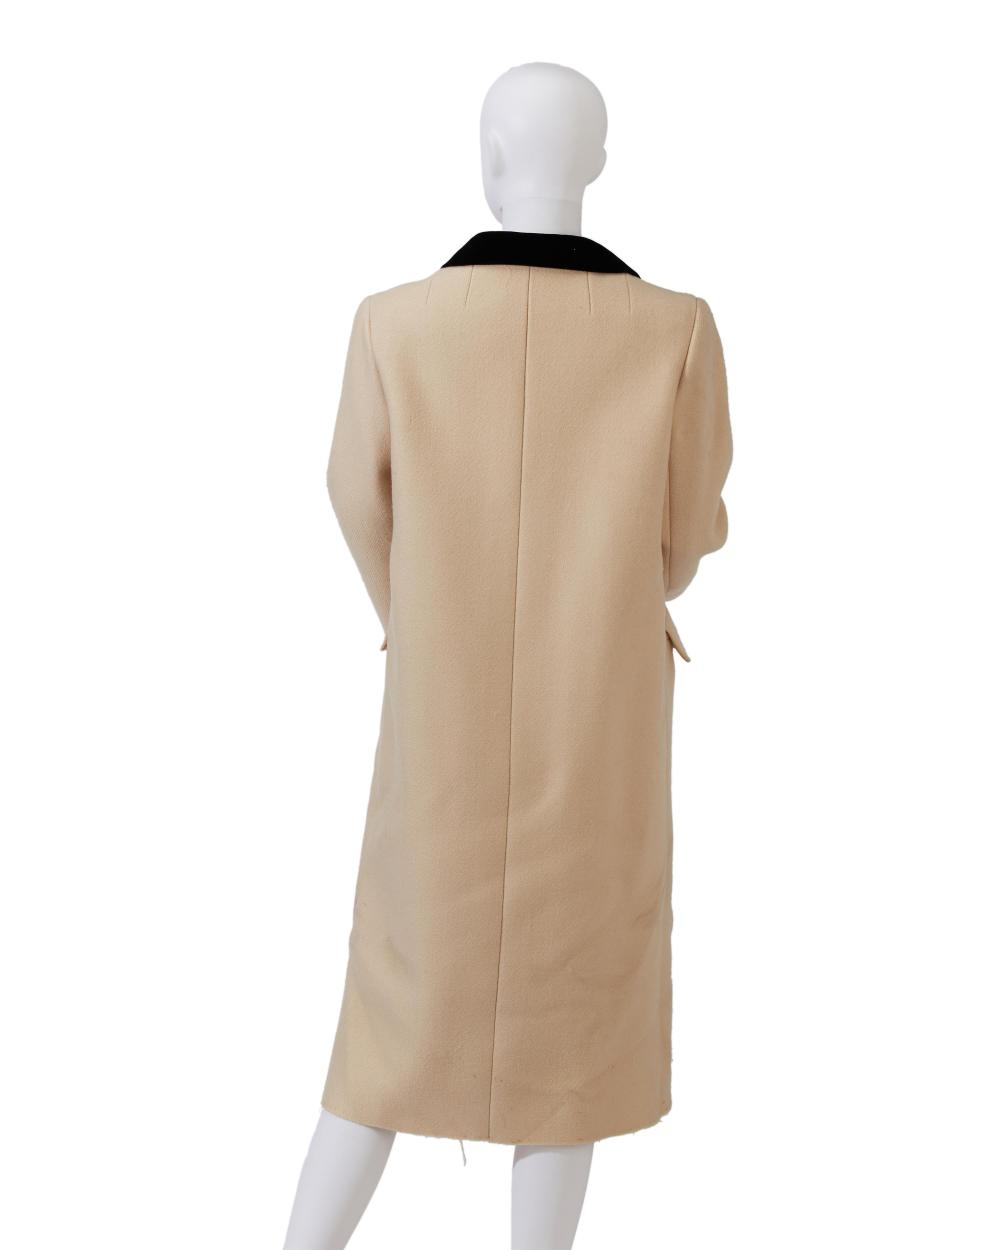 A Norman Norell overcoat